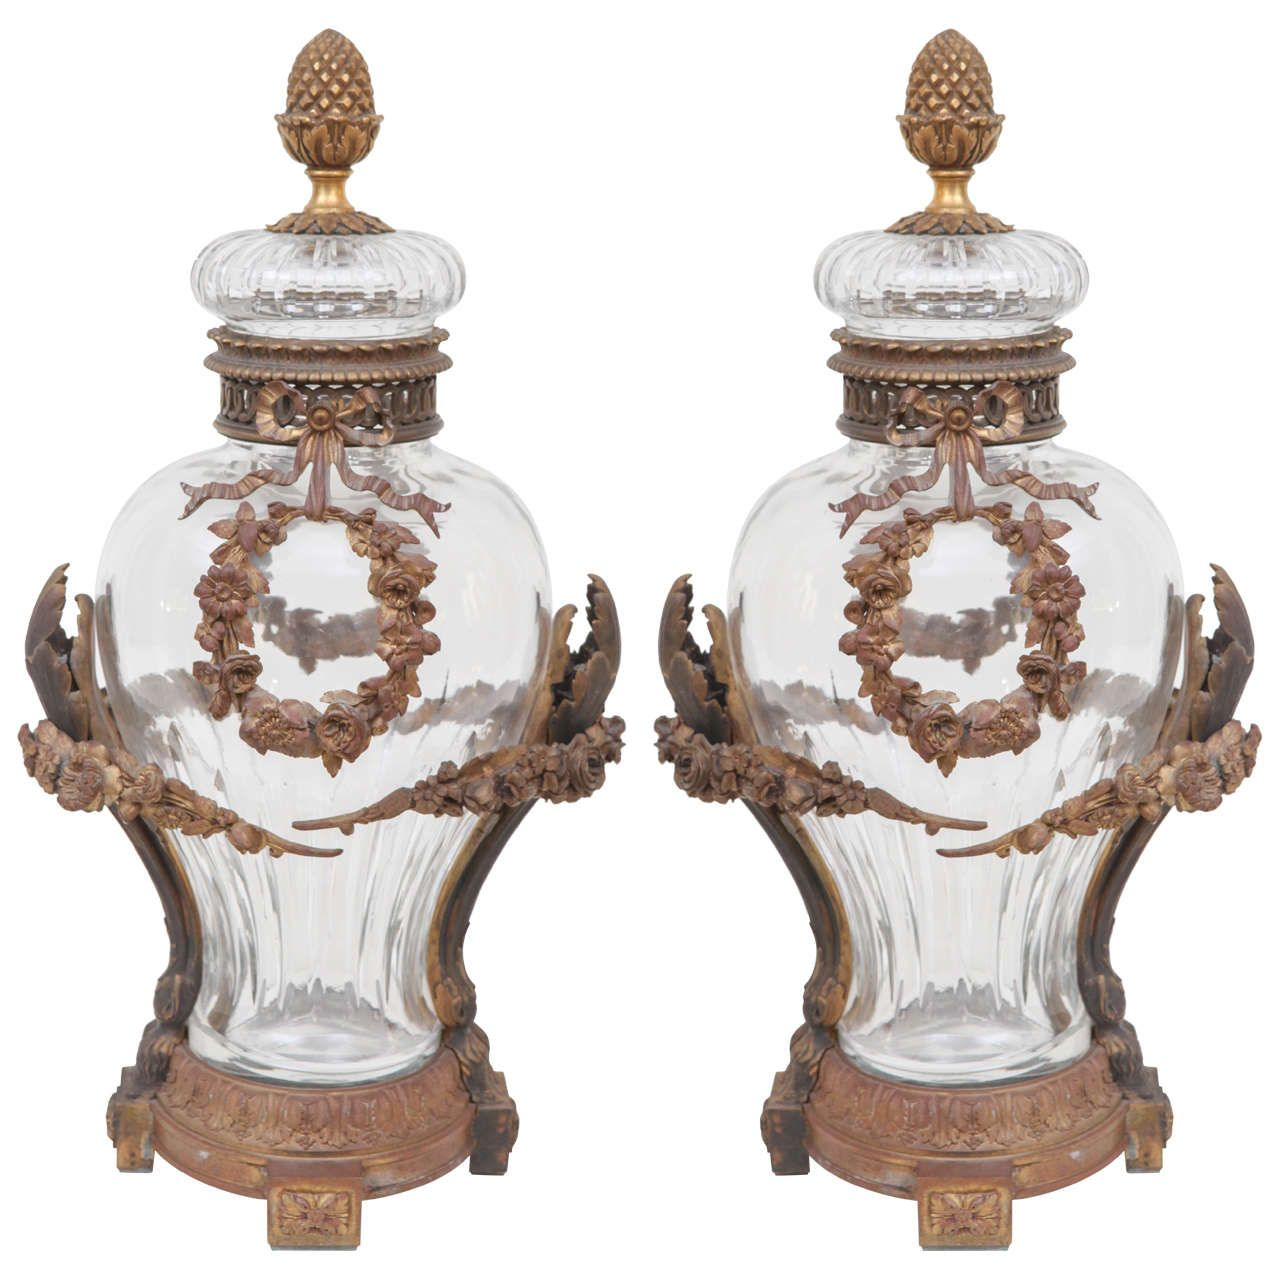 Pair of 19th Century Dore Bronze Mounted Baccarat Covered Crystal Vases